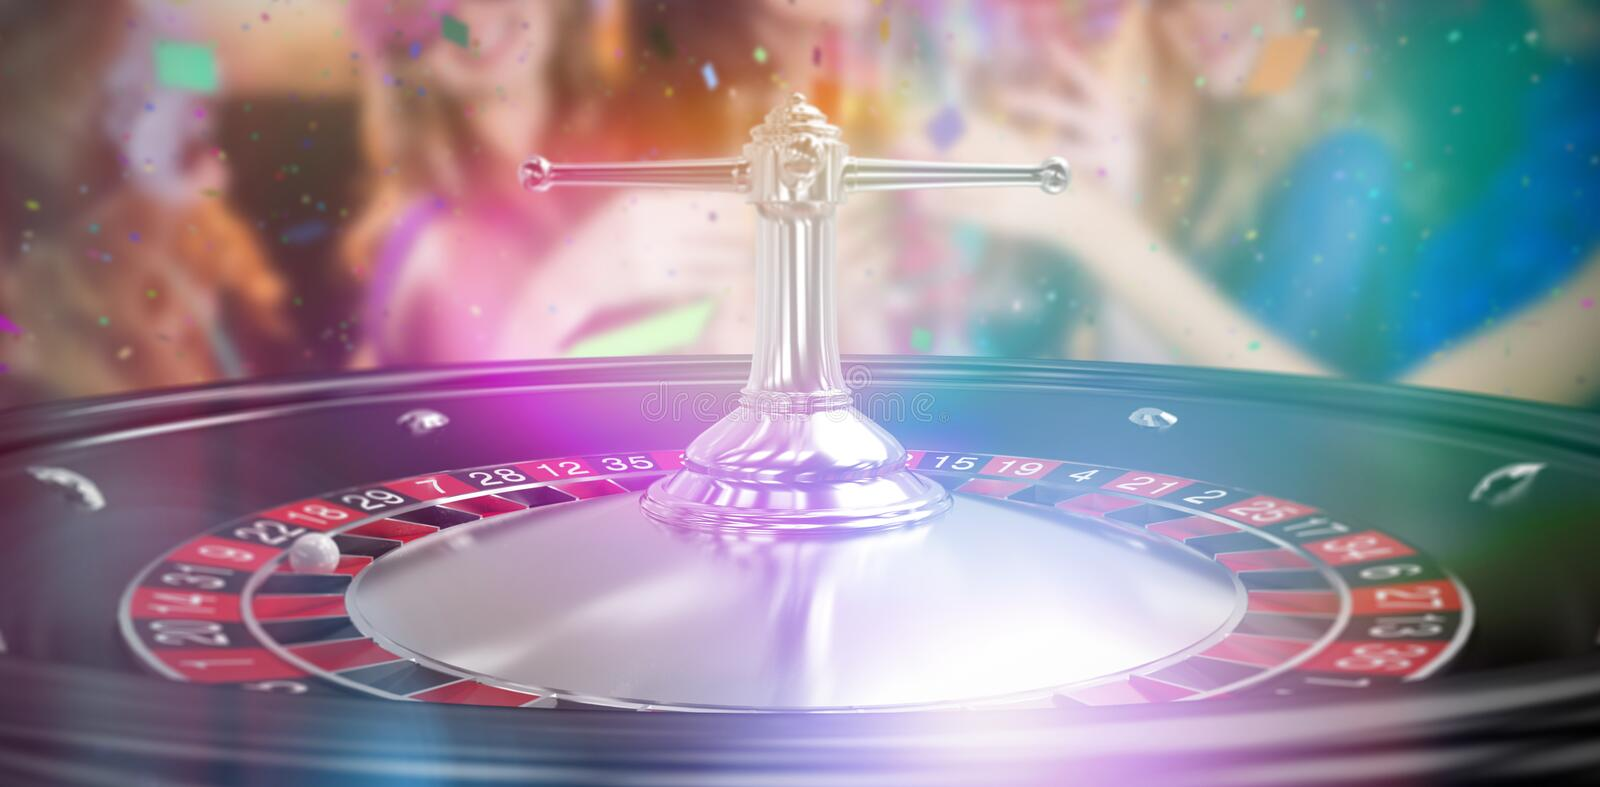 Composite 3d image of group of friends toasting glass of champagne. Group of friends toasting glass of champagne against close up image of 3d roulette wheel stock photos